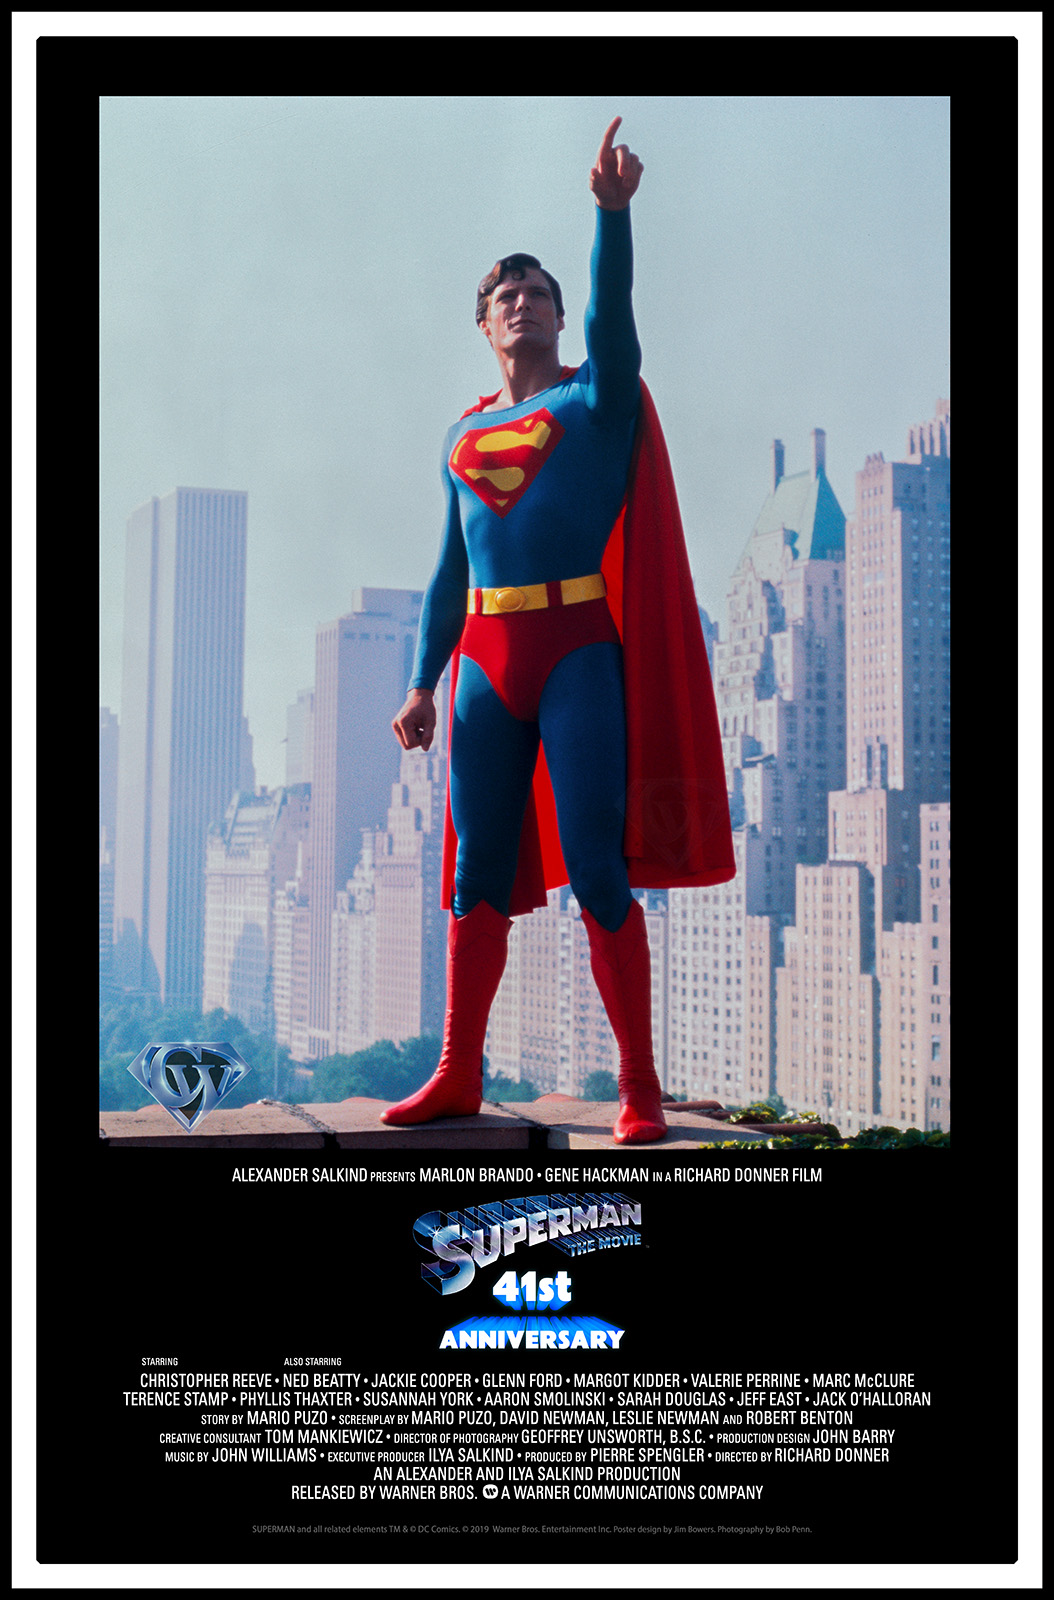 The 41st Anniversary of Superman: The Movie